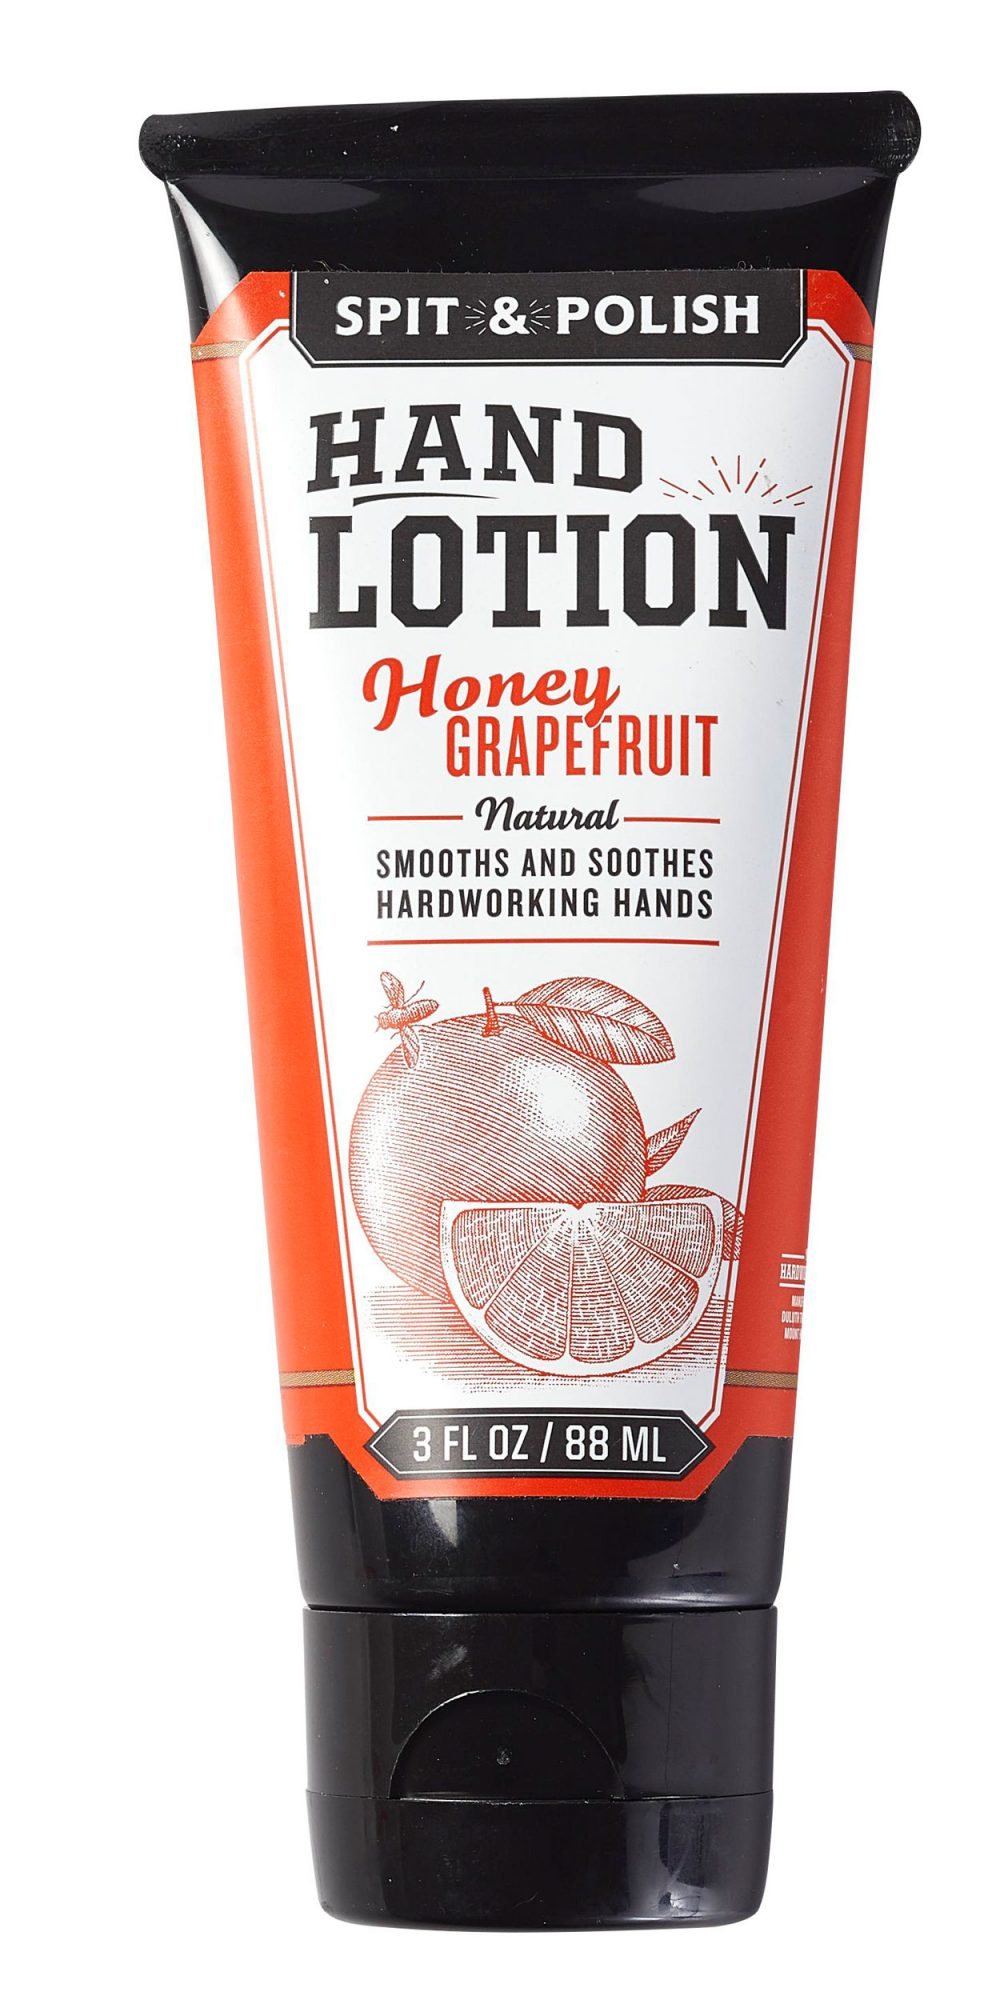 Spit and Polish Hand Lotion